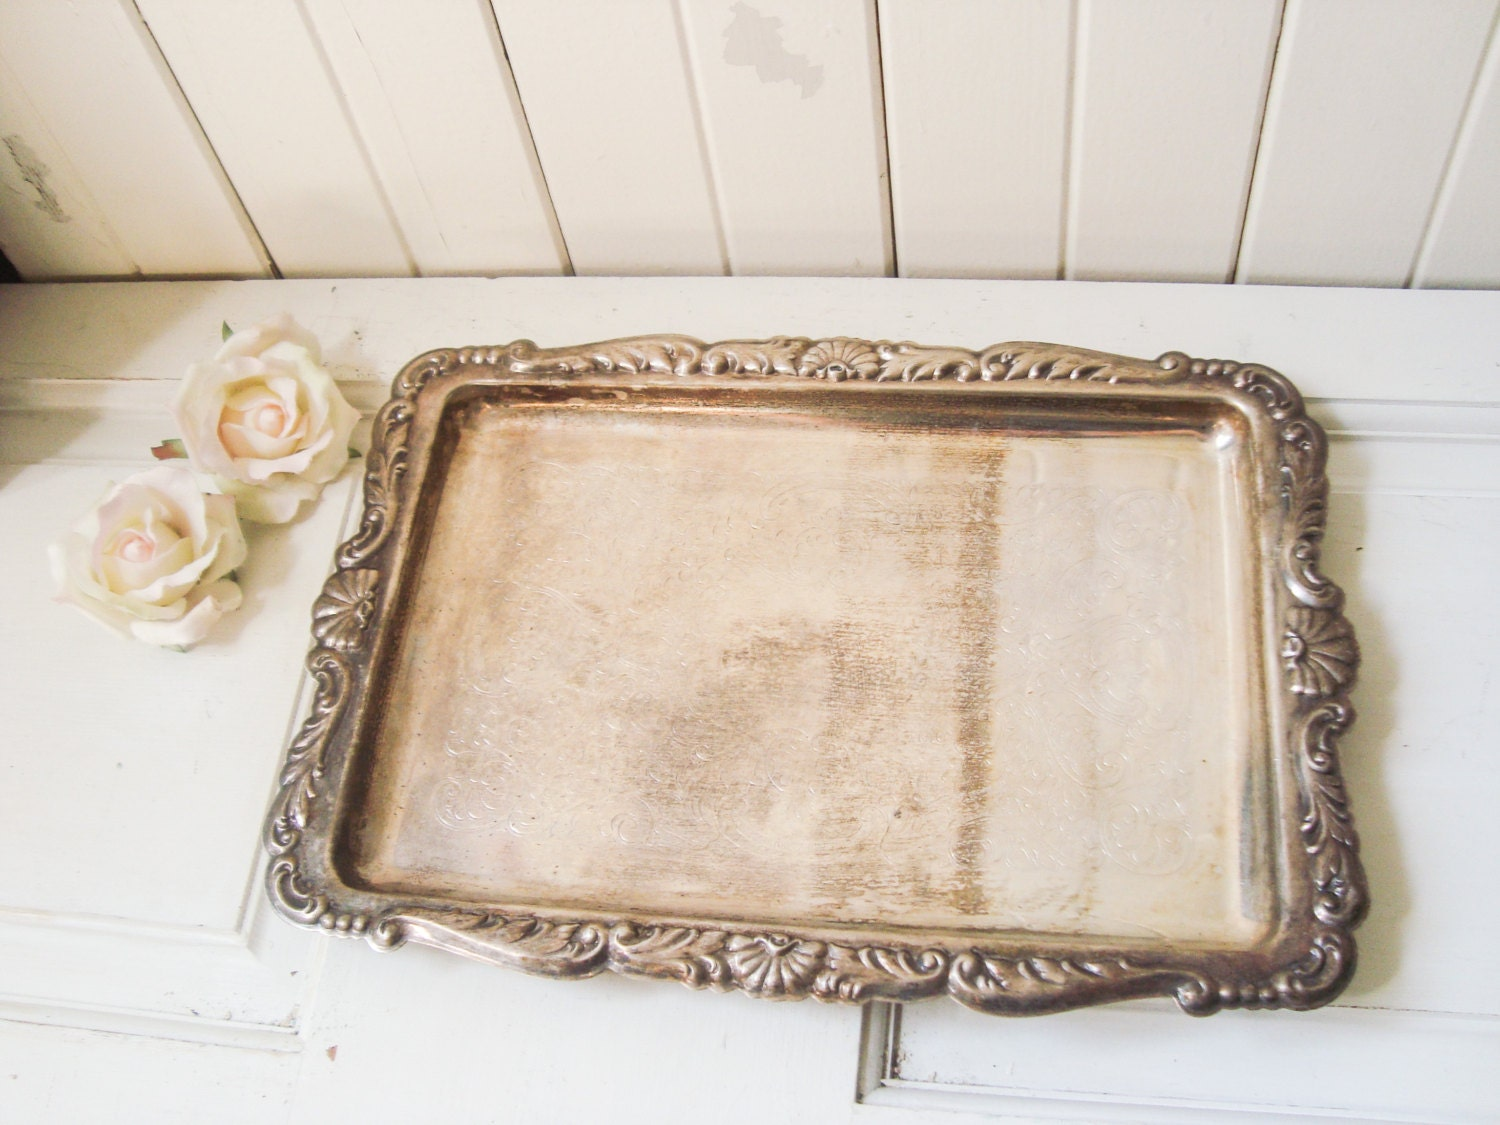 Decorative Metal Tray Reserved Vintage Ornate Silver Plate Rectangle Tray Metal Serving